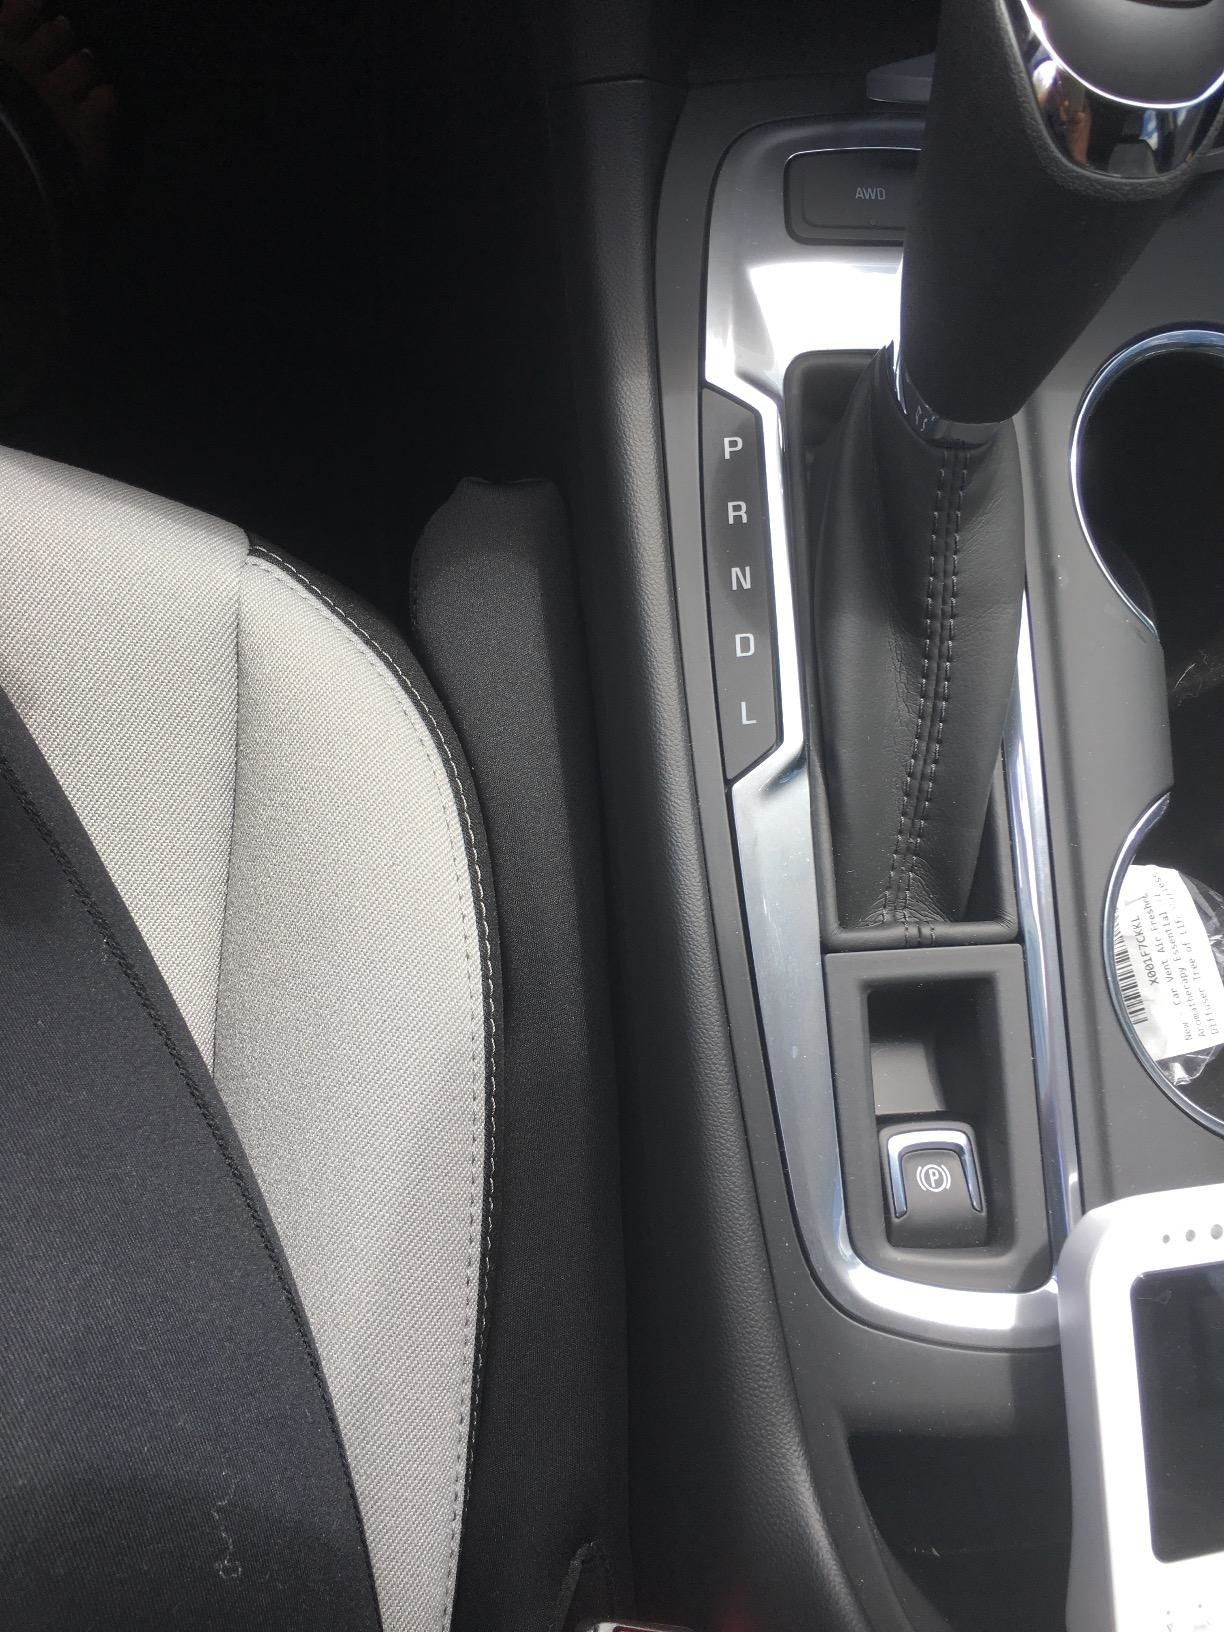 A small black seat filler wedged between the chair and console of a car